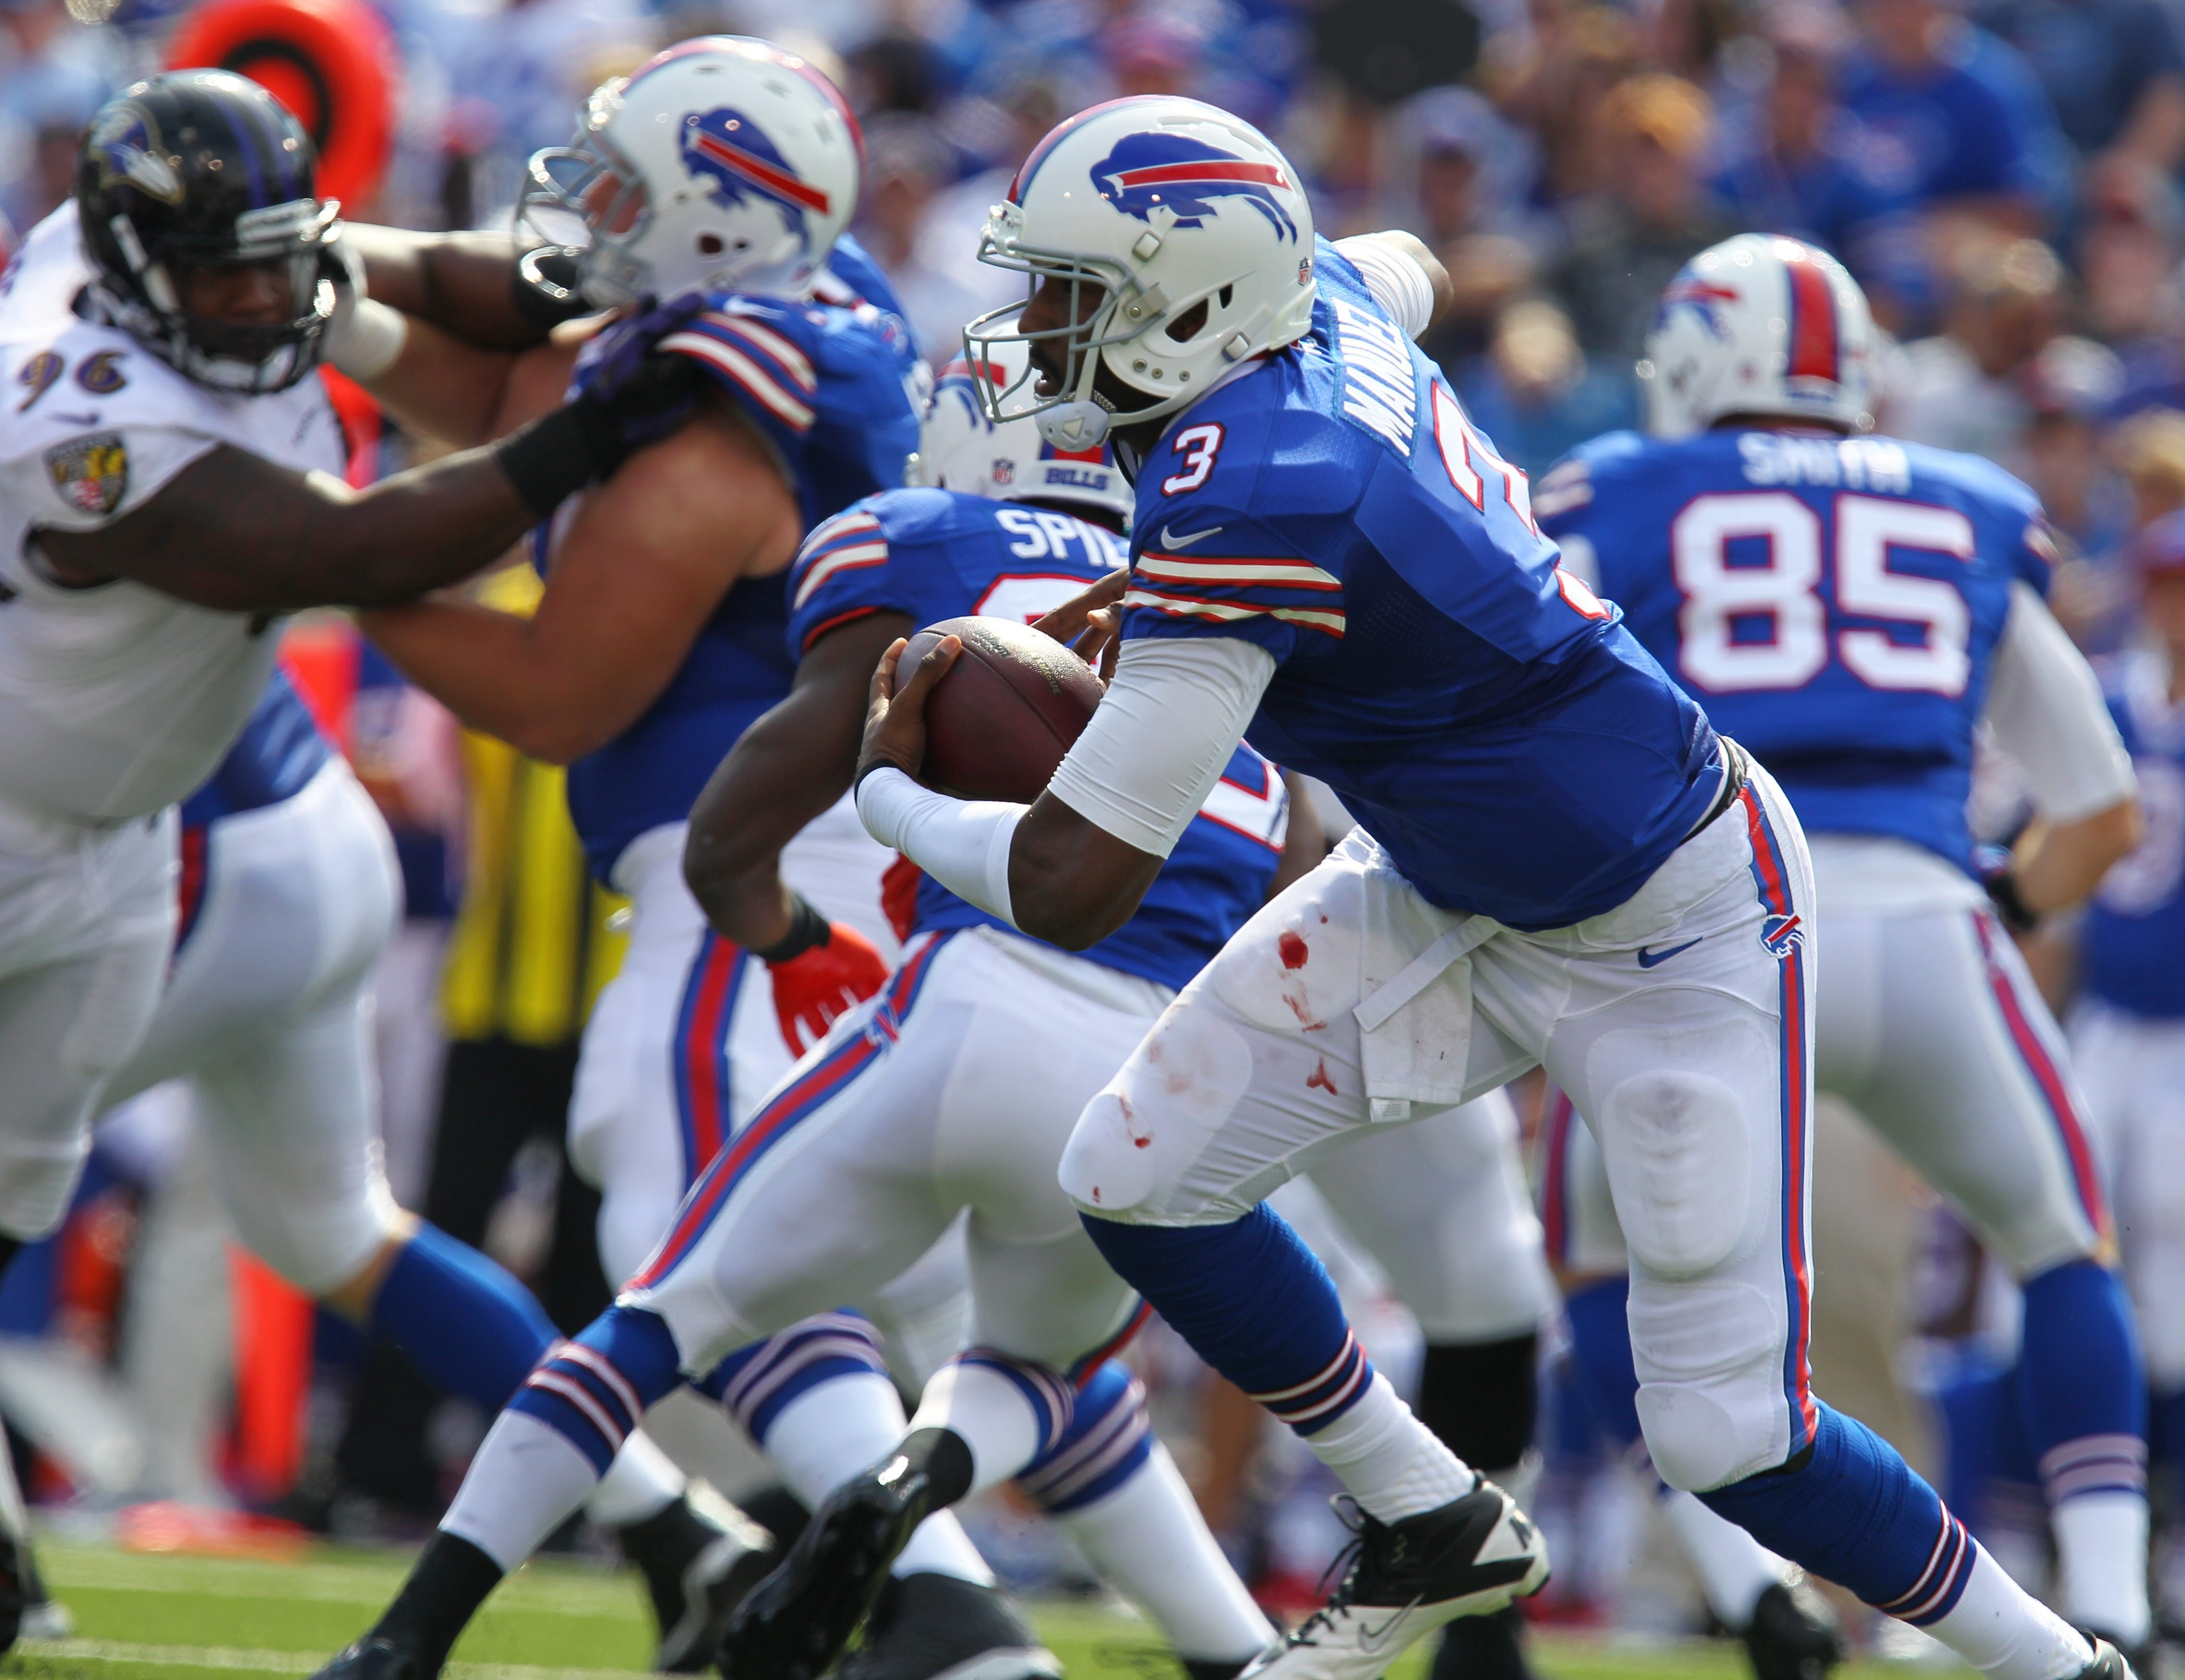 The Bills' EJ Manuel gains a few yards in the first quarter at Ralph Wilson Stadium against the Ravens.  (Mark Mulville/Buffalo News)